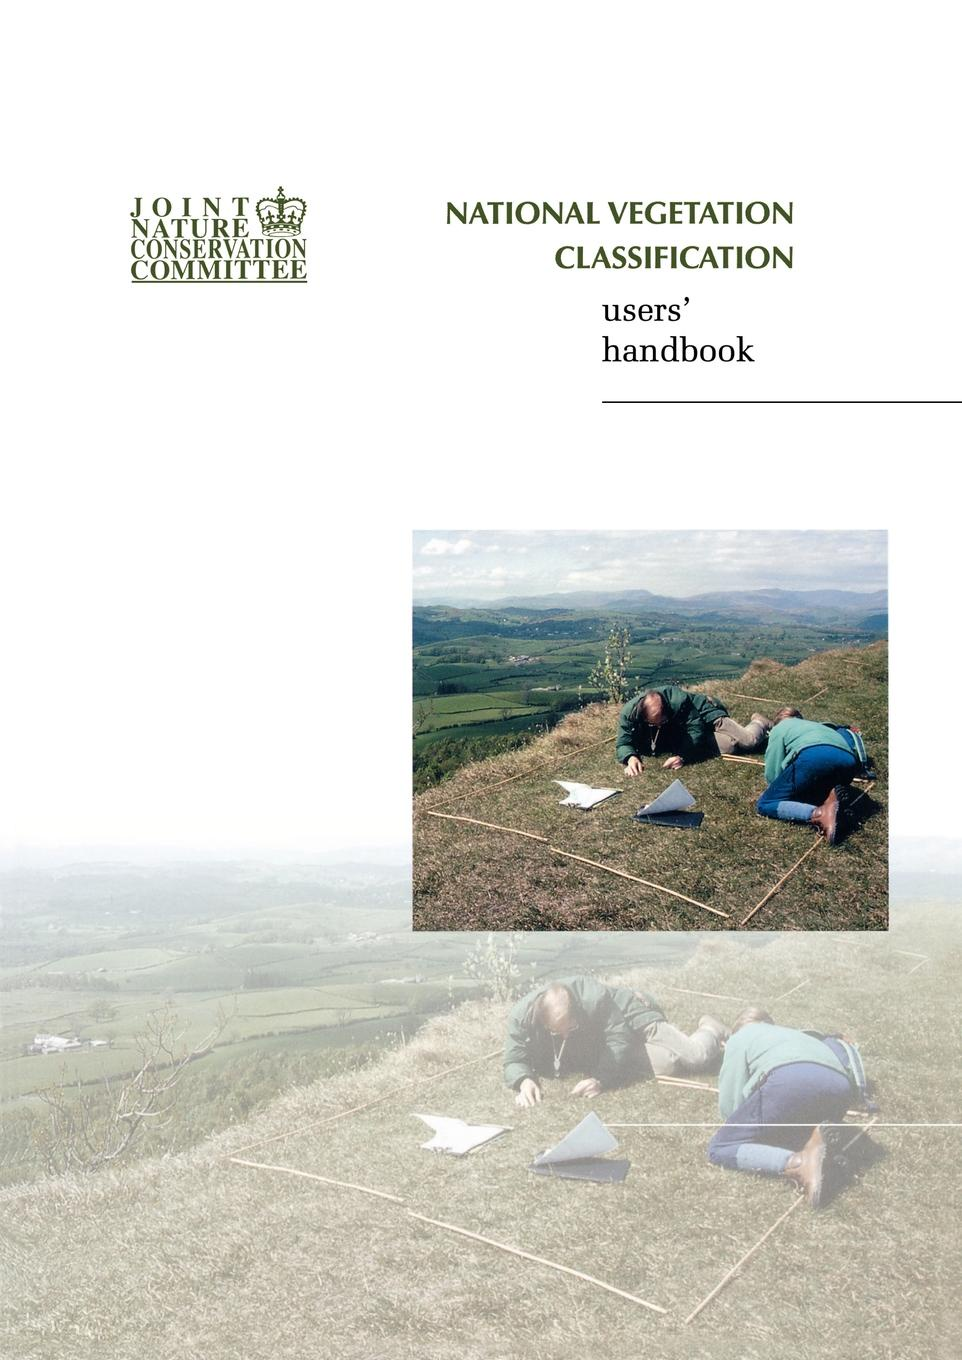 цены на John S. Rodwell National Vegetation Classification - Users' Handbook  в интернет-магазинах